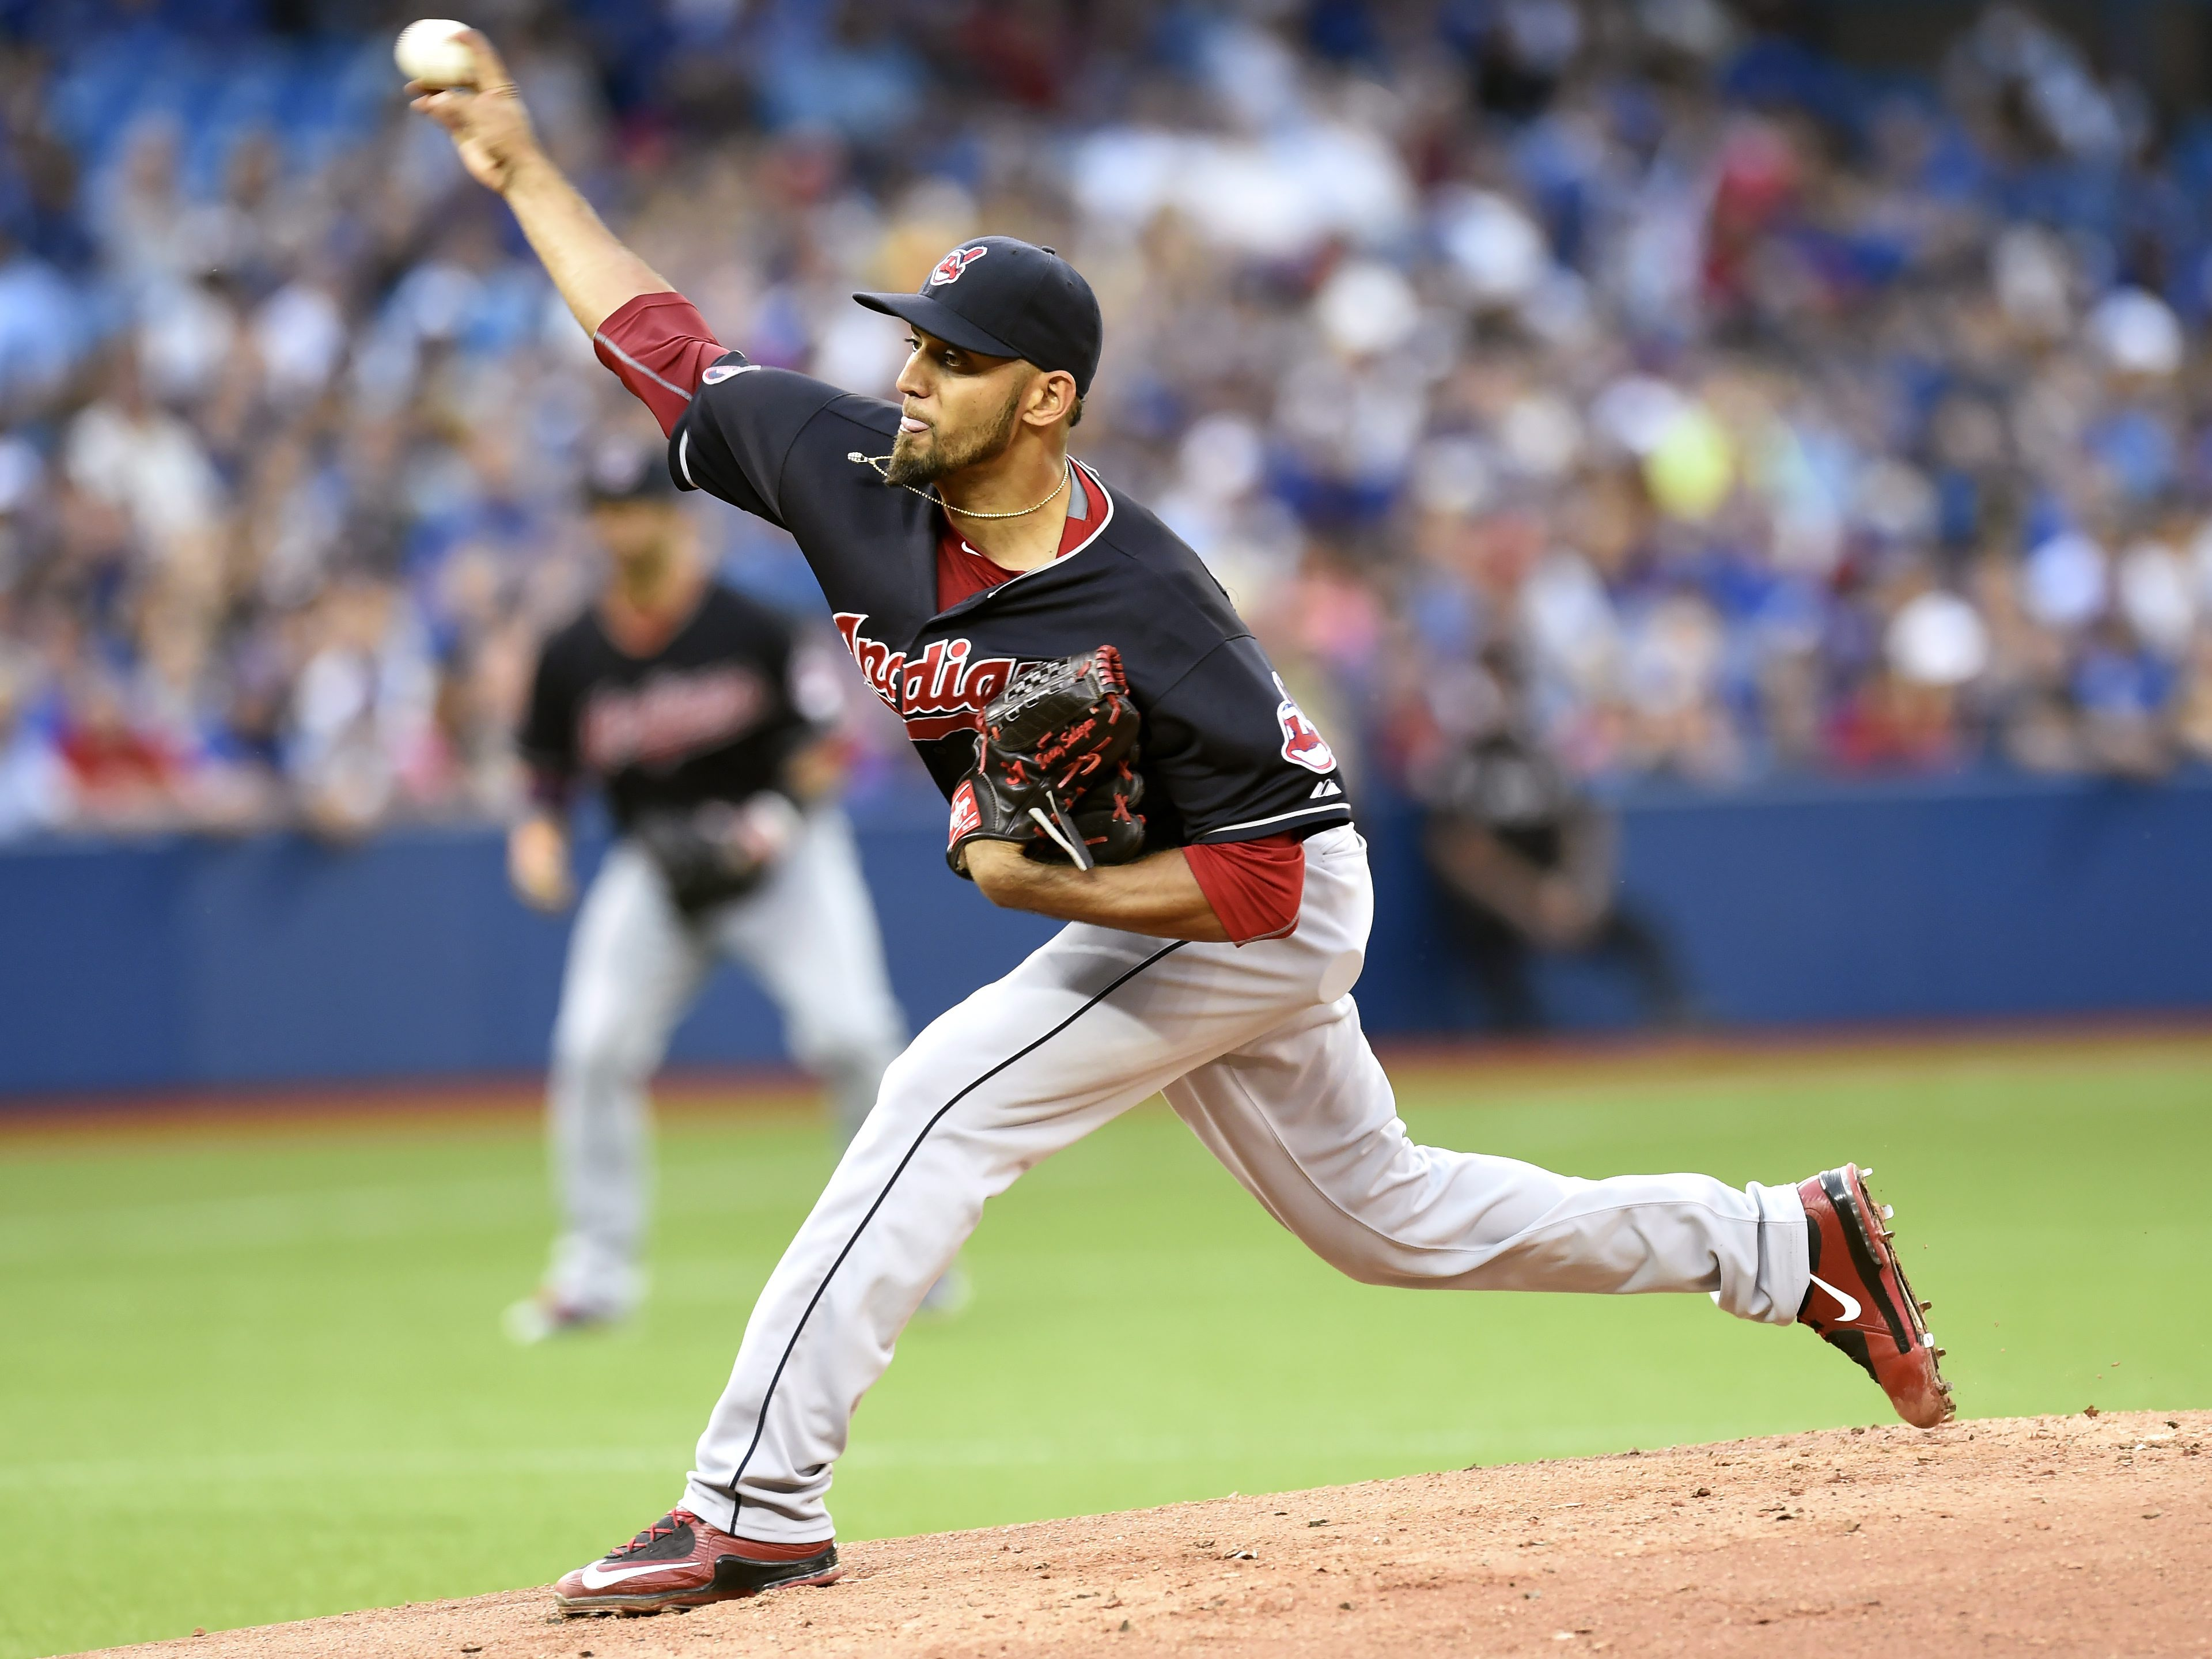 Cleveland Indians' starting pitcher Danny Salazar works against the Toronto Blue Jays during the first inning of a baseball game, Monday, Aug. 31, 2015 in Toronto. (Frank Gunn/The Canadian Press via AP) MANDATORY CREDIT